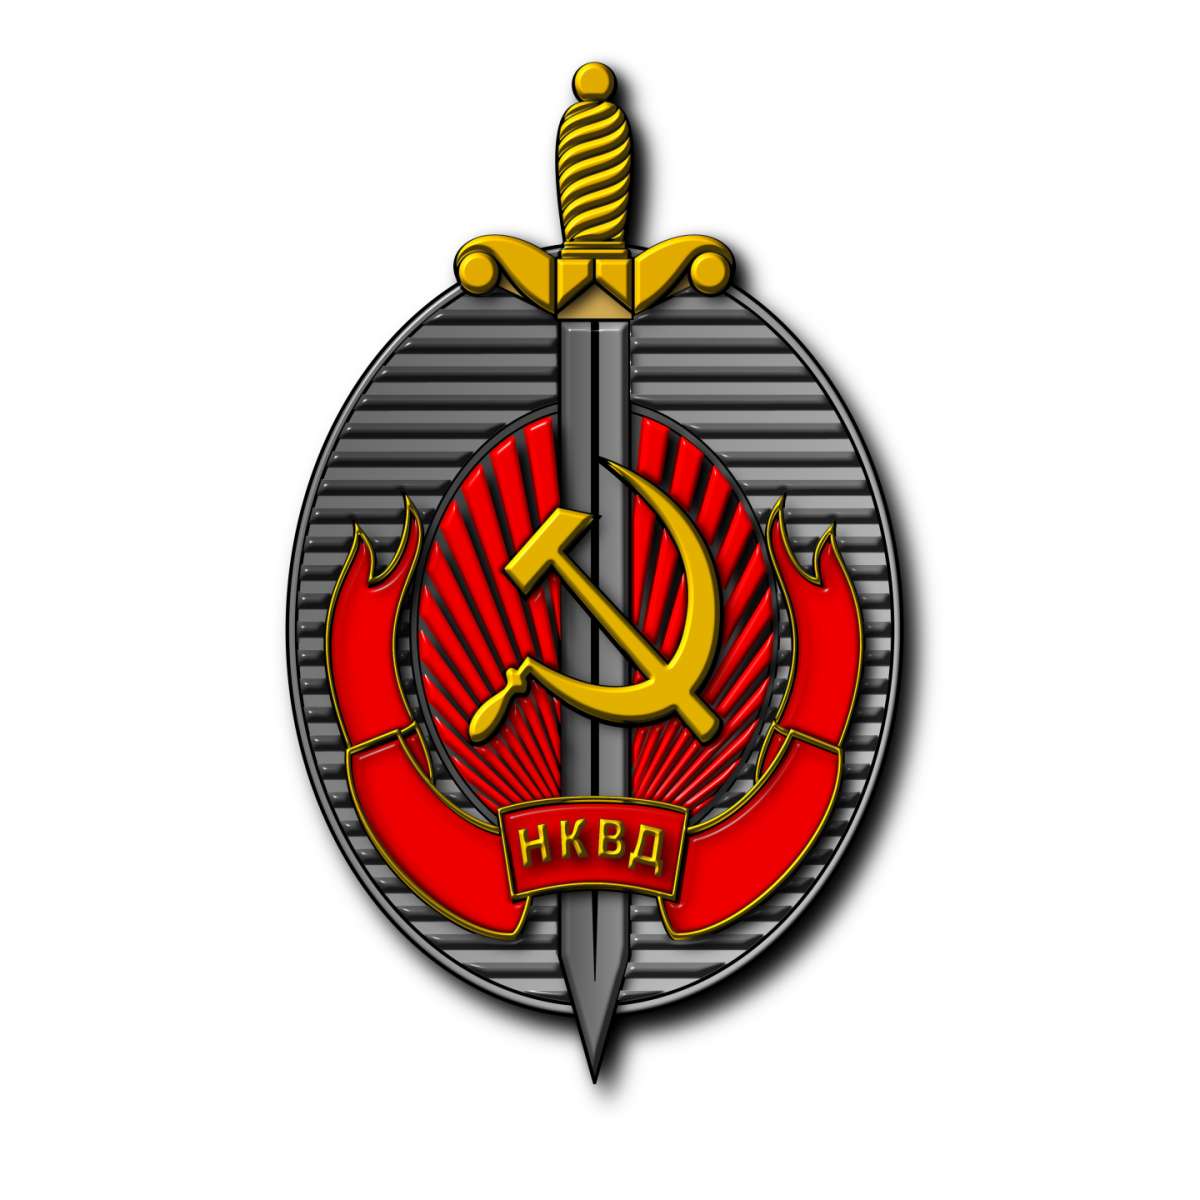 The responsibility of the NKVD was to ensure the internal security of the Soviet Union and it systematically ensured it through massive political repression and authorized murders of many thousands of politicians and citizens.